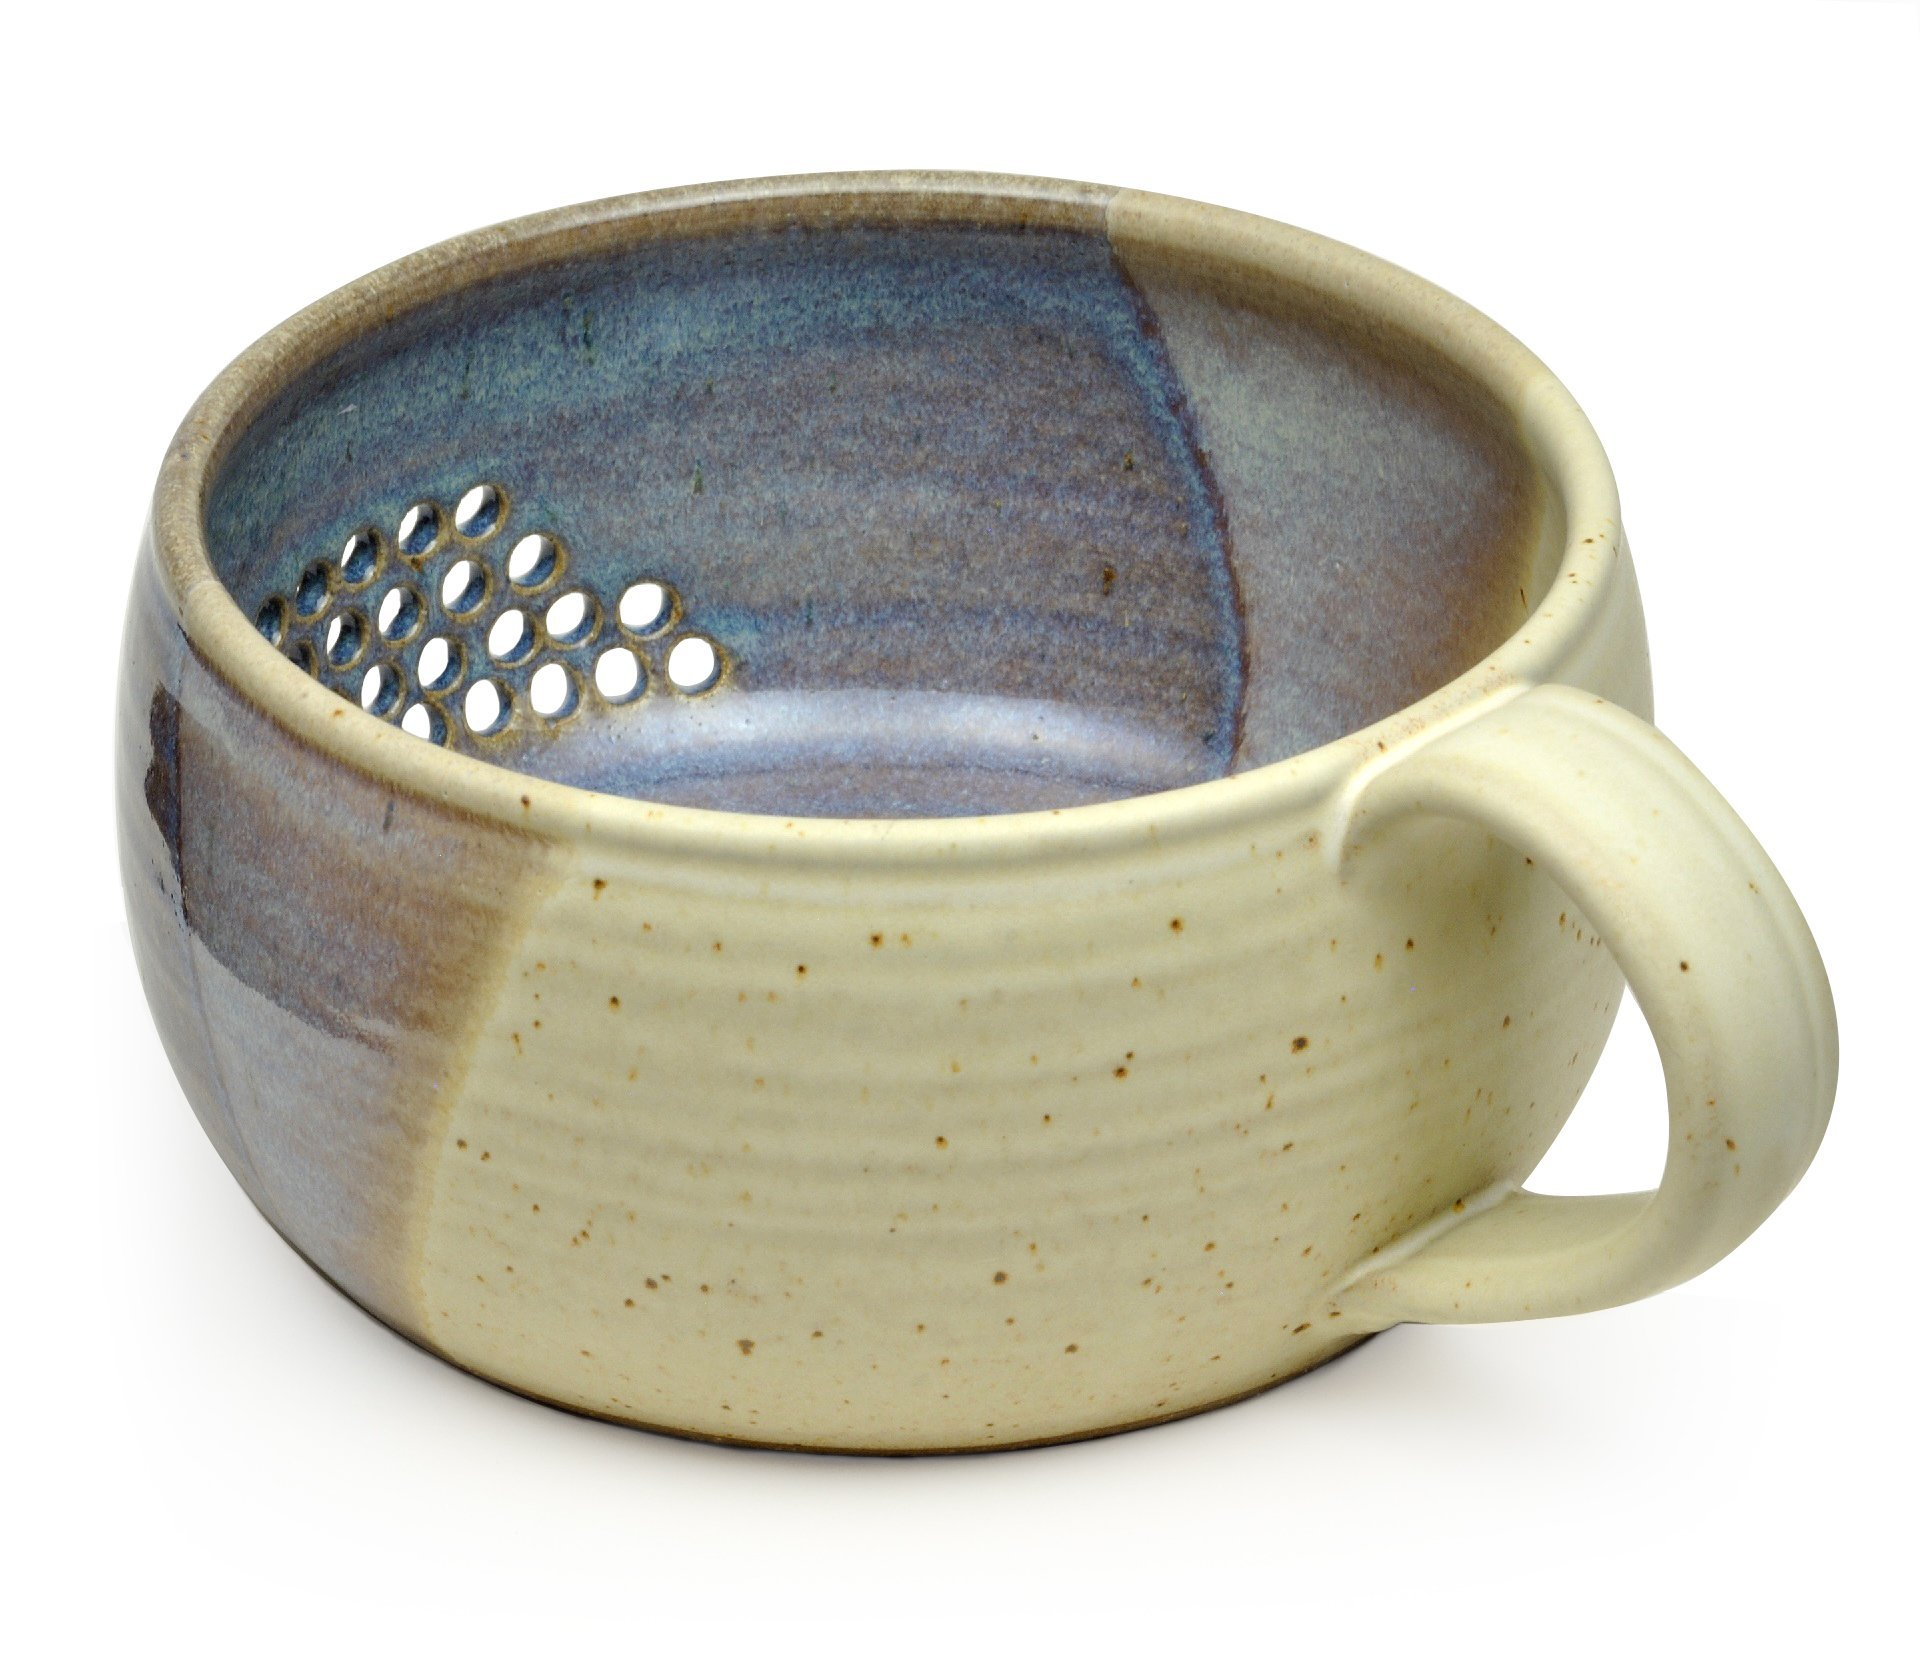 GW Pottery Handmade Stoneware Berry Bowl/Colander, Blue-White by Geoff Walsh Pottery (Image #1)